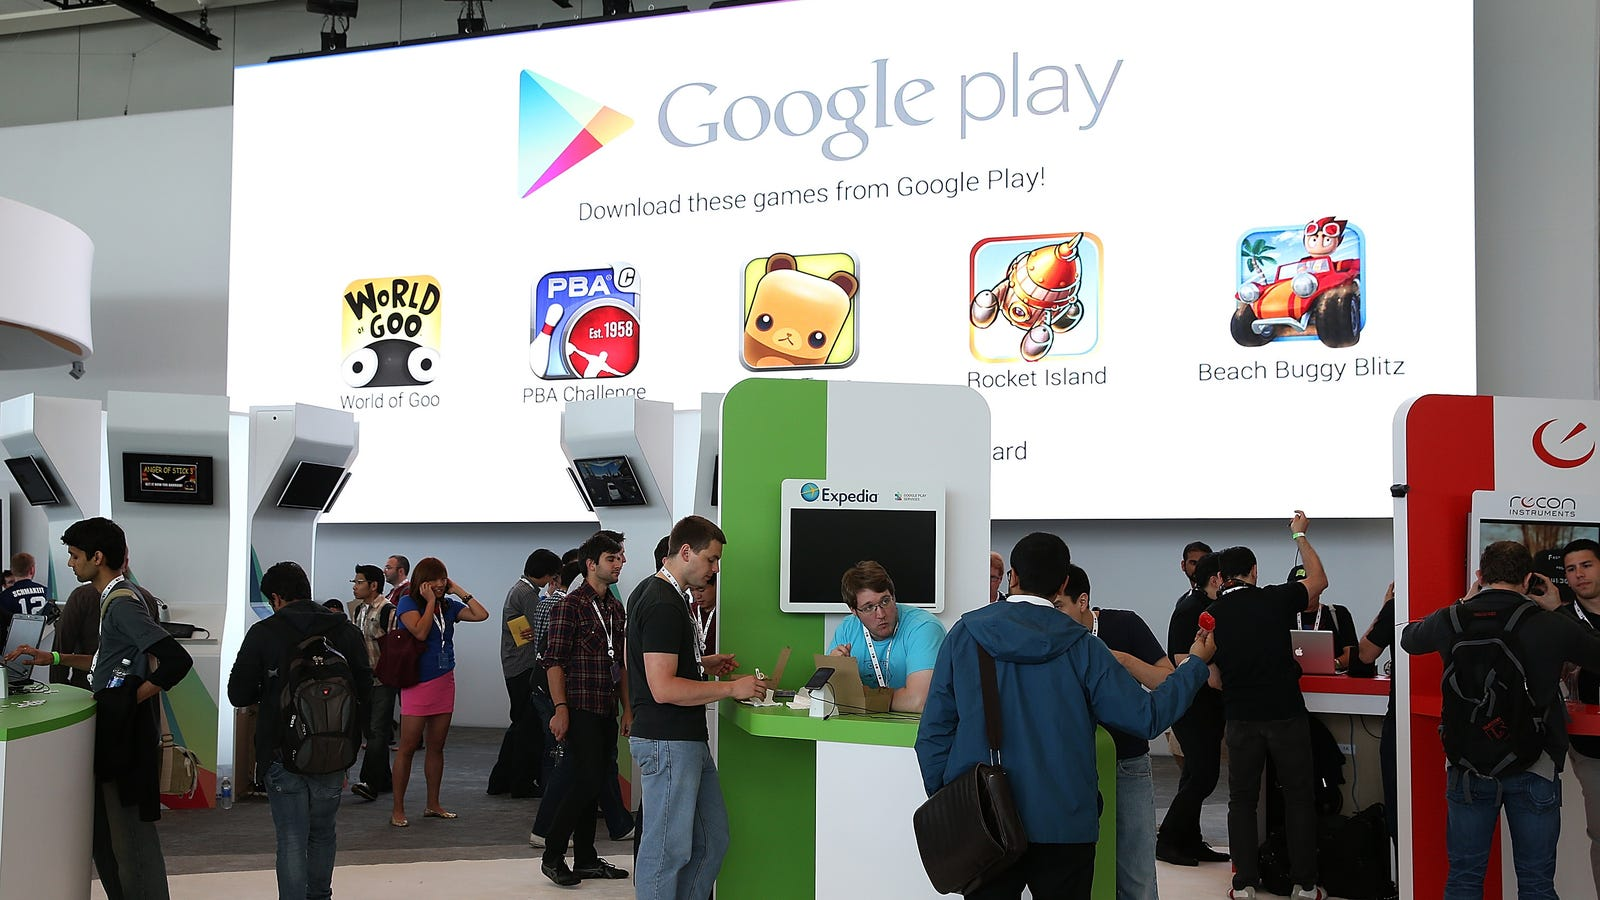 photo image Google Expels Spyware From Play Store That Recorded Audio and Took Photos Without Permission